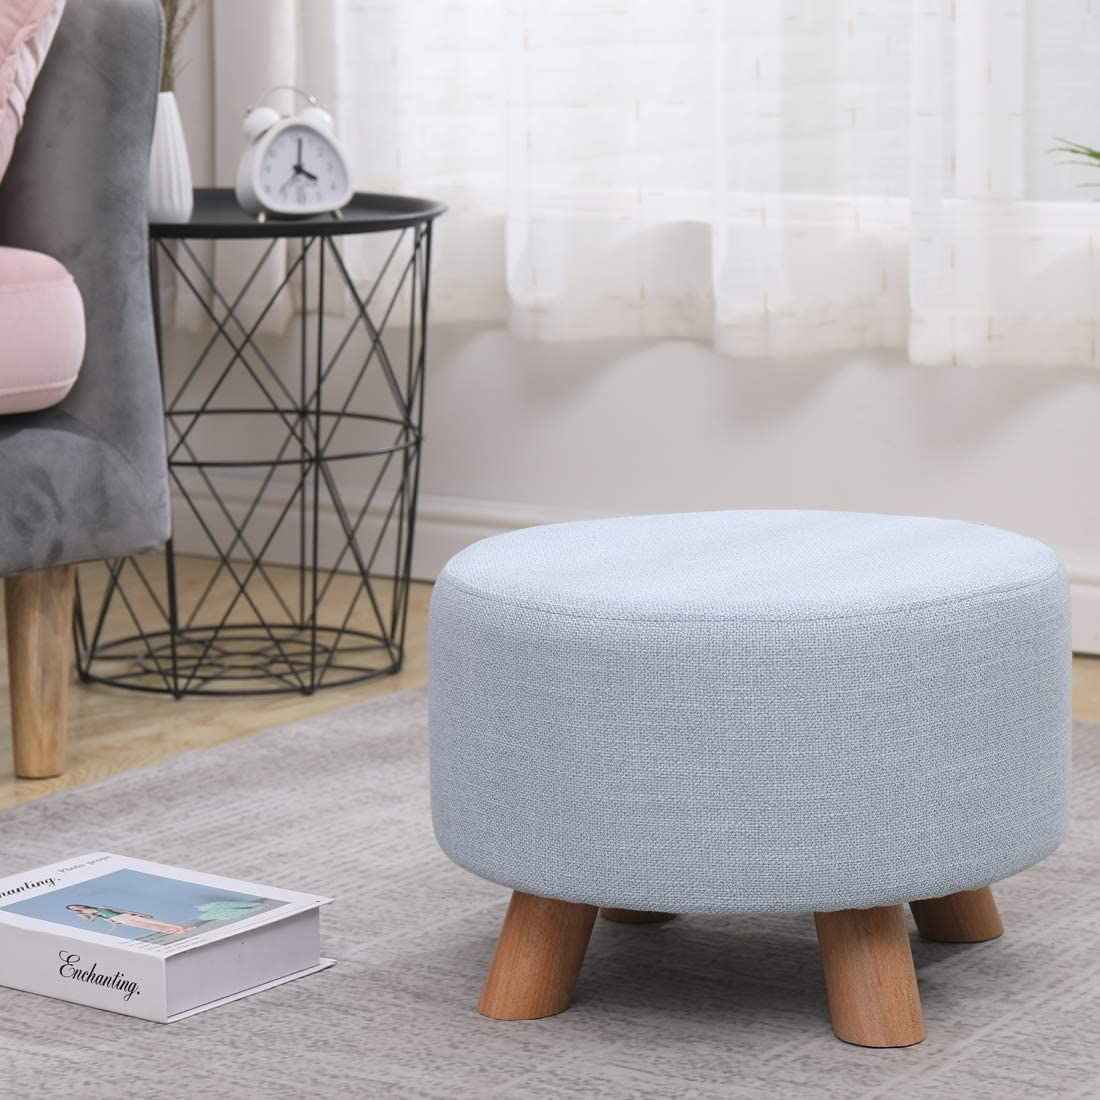 LEITING Ottoman Footstool Footrest Foot Stool Pouffe Padded Modern Home Living Room Bedroom Round Seat with Removable Stool Cover, 4 Beech Wooden Legs (Yellow) Blue